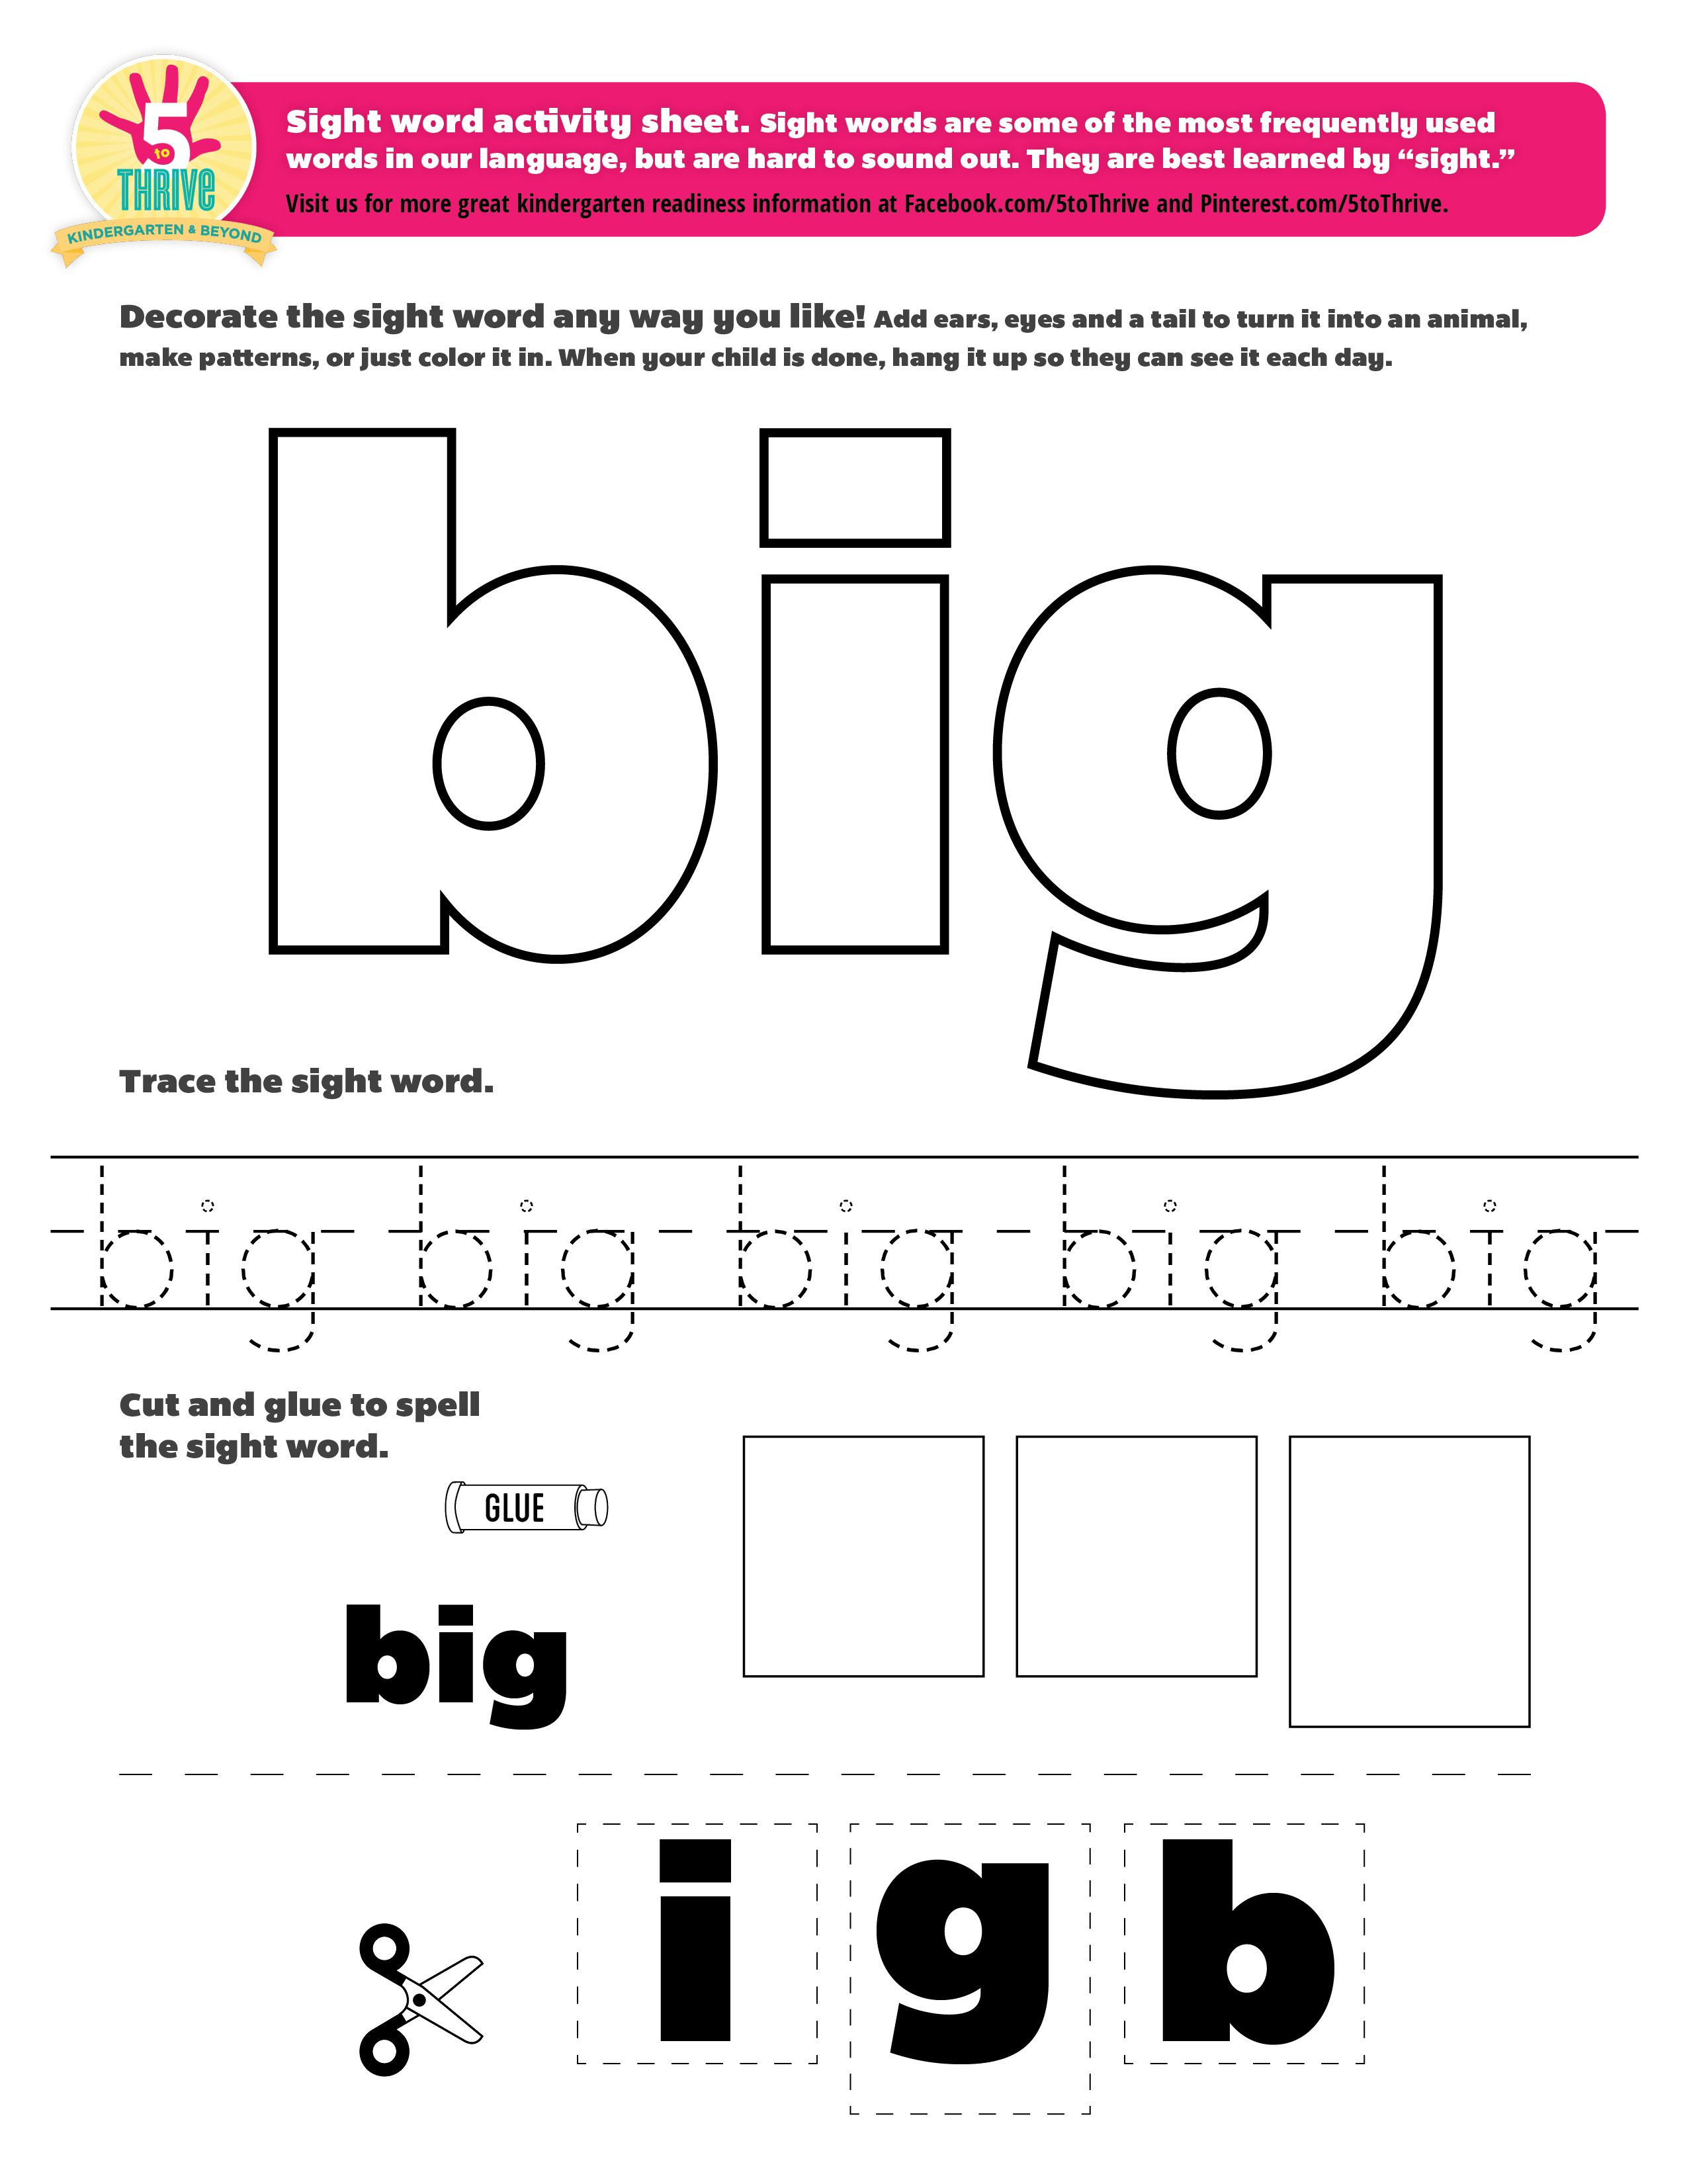 Sight Word Big Sight Words Are Some Of The Most Frequently Used Words In Our Language But Are Ha Sight Word Worksheets Sight Words Kindergarten Sight Words [ 3301 x 2550 Pixel ]